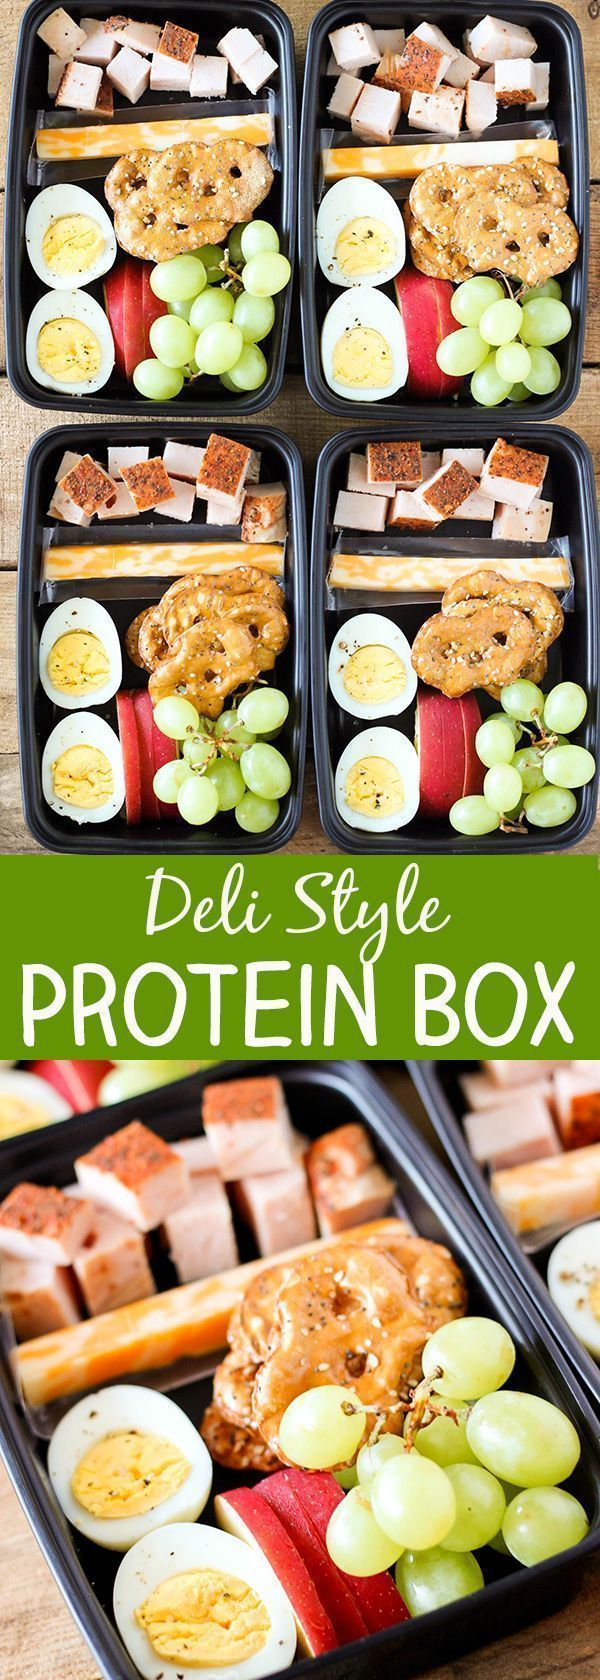 Gotta love easy ideas for snacks and lunches packed with protein, fruit, and vegetables. Bonus, these make great ideas for kid lunches too. #protein #snacks https://tmblr.co/Z8fVob2TbLpUf